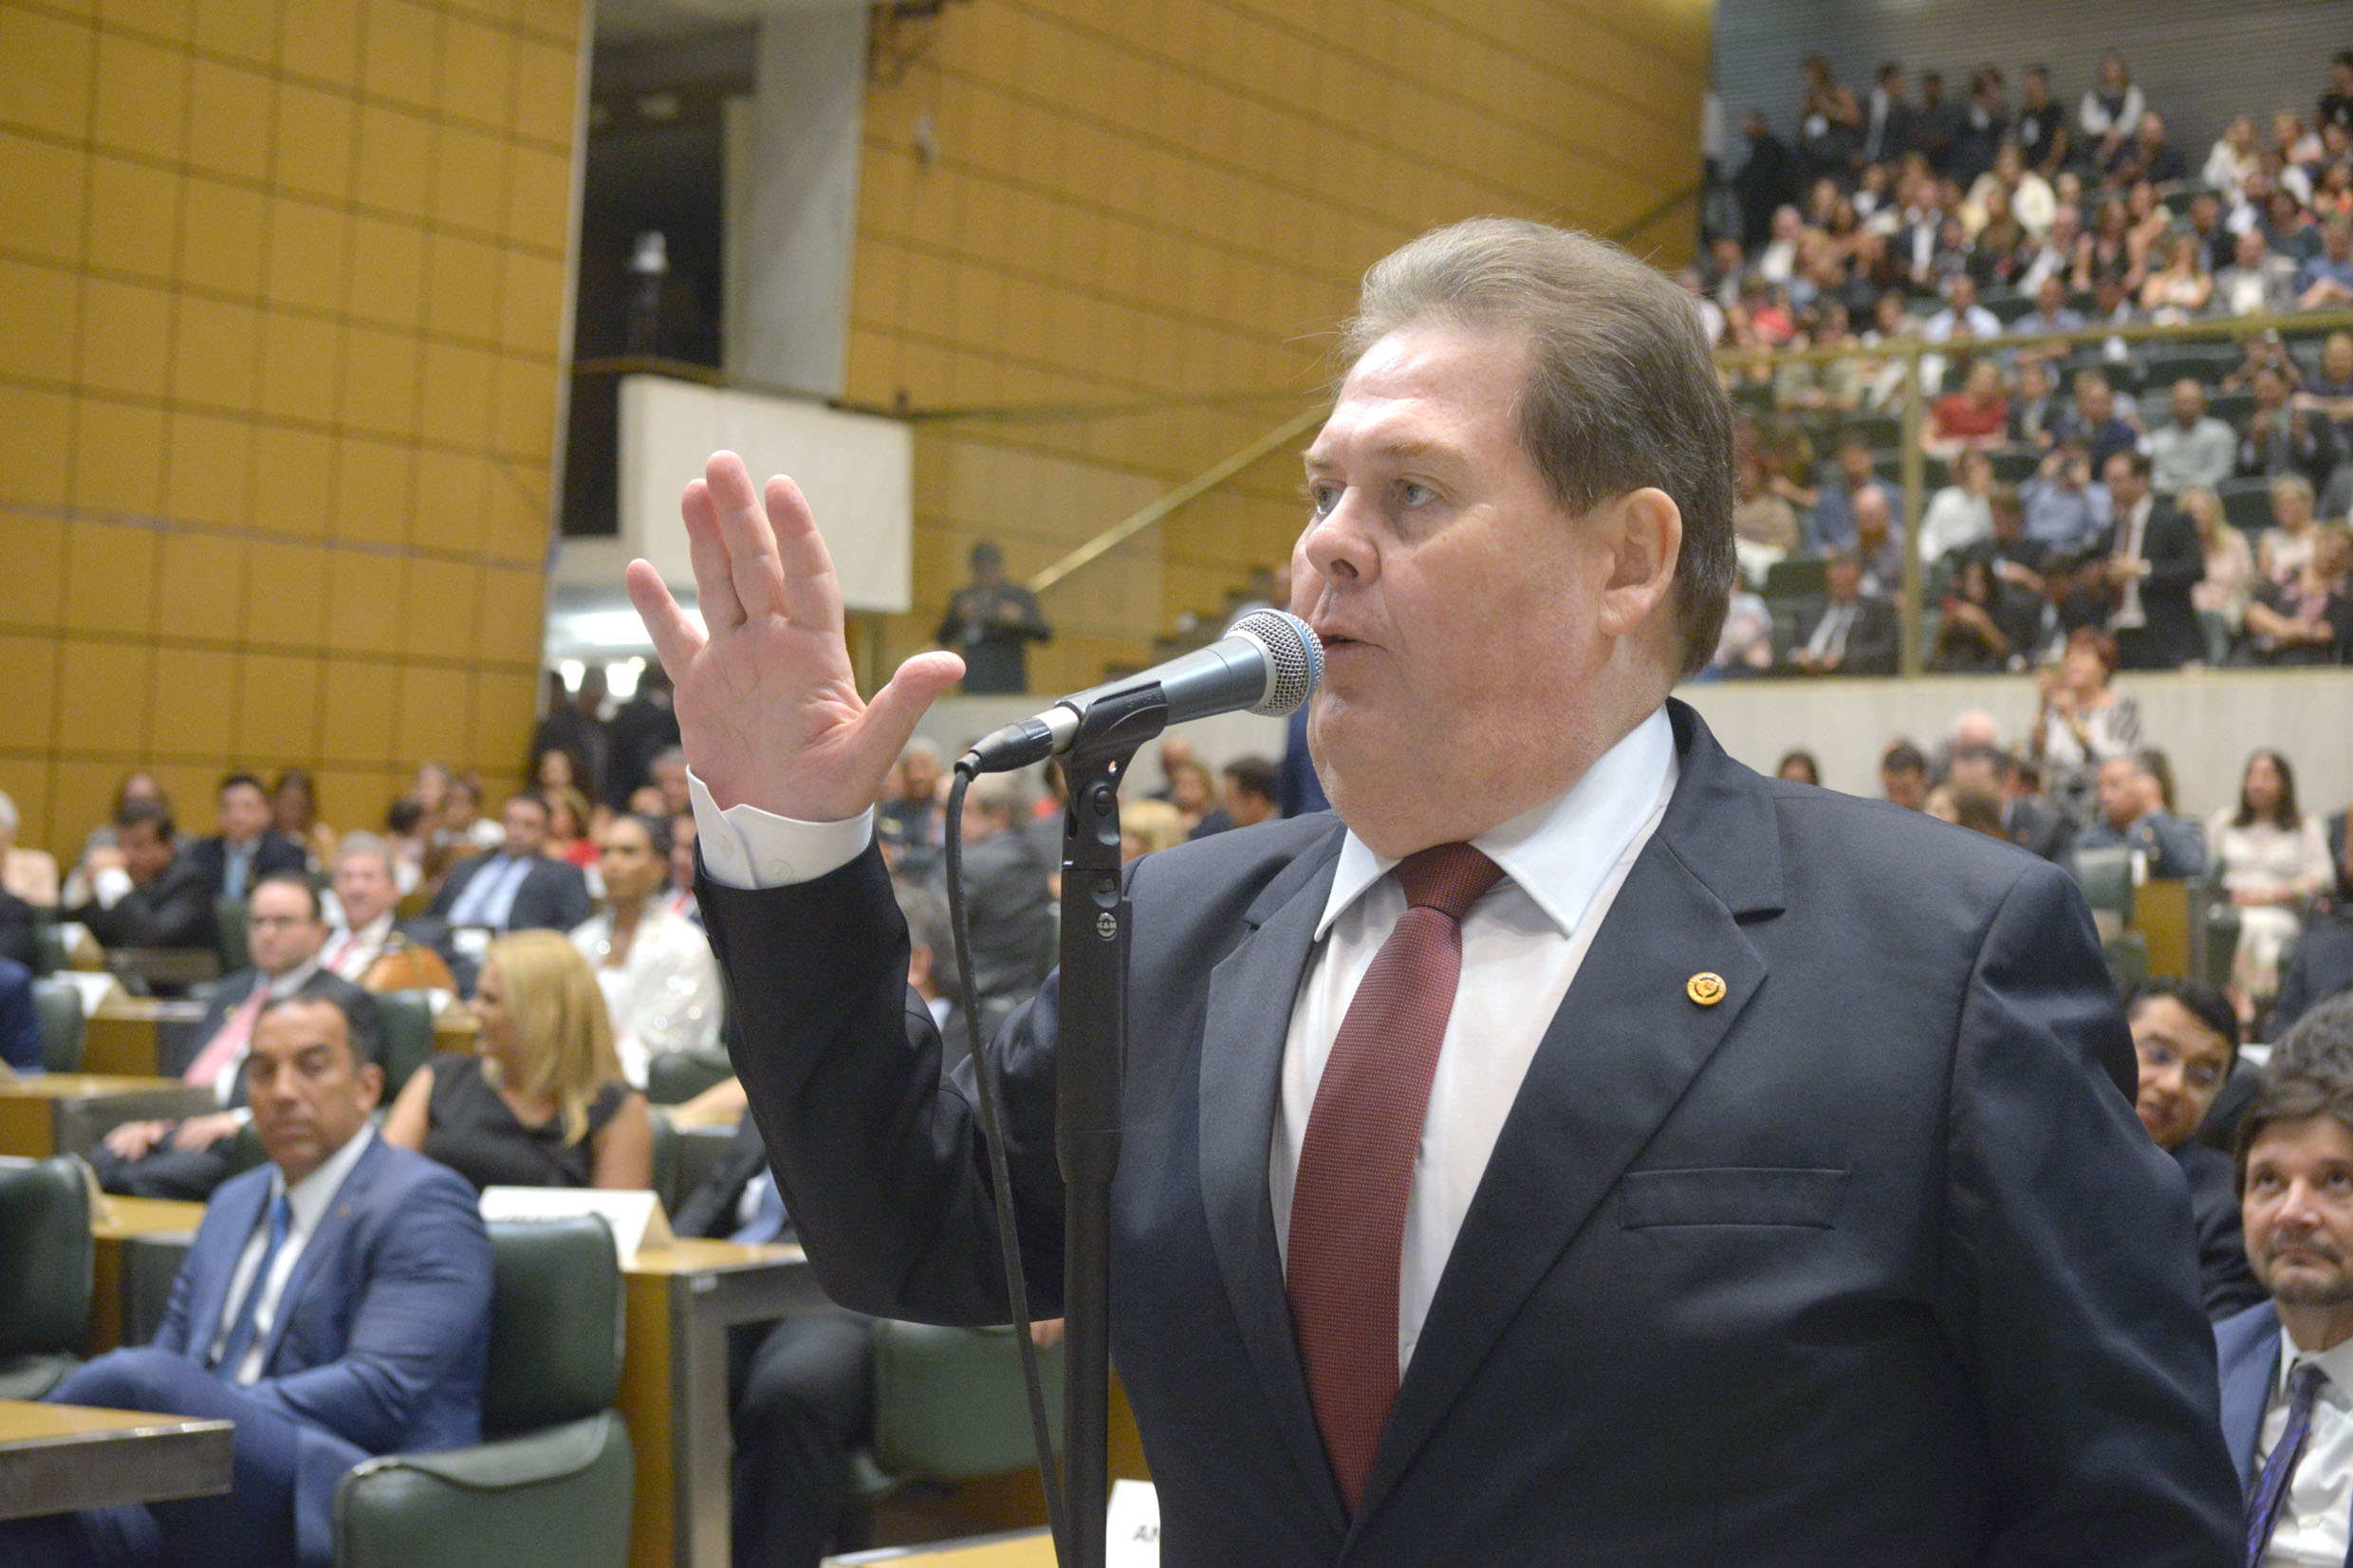 Roberto Morais (PPS)	<a style='float:right' href='https://www3.al.sp.gov.br/repositorio/noticia/N-03-2019/fg231792.jpg' target=_blank><img src='/_img/material-file-download-white.png' width='14px' alt='Clique para baixar a imagem'></a>